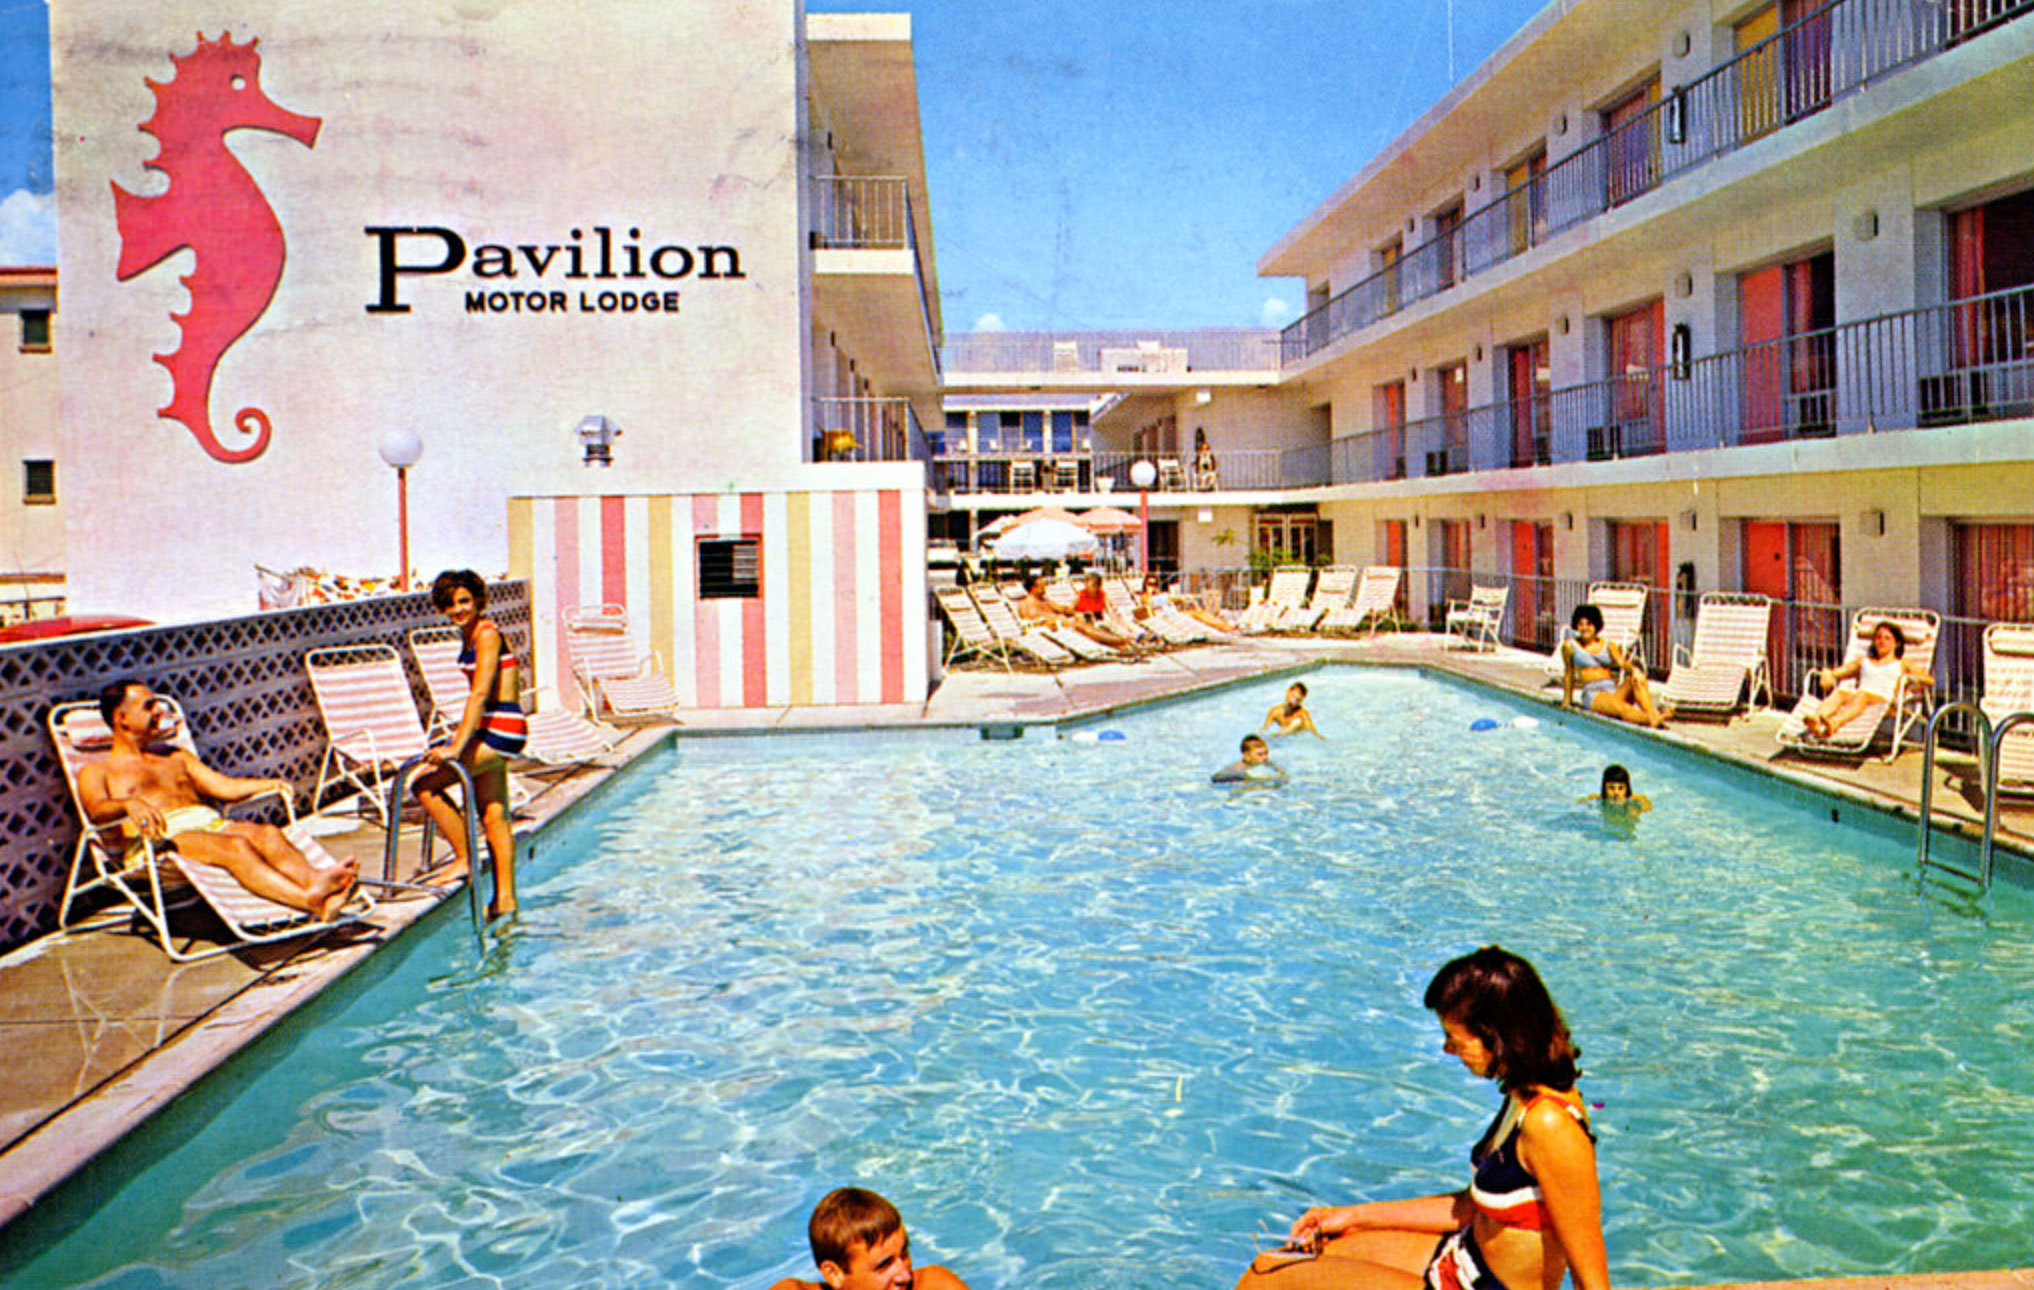 Pavillion Motor Lodge Ocnj Where To Stay